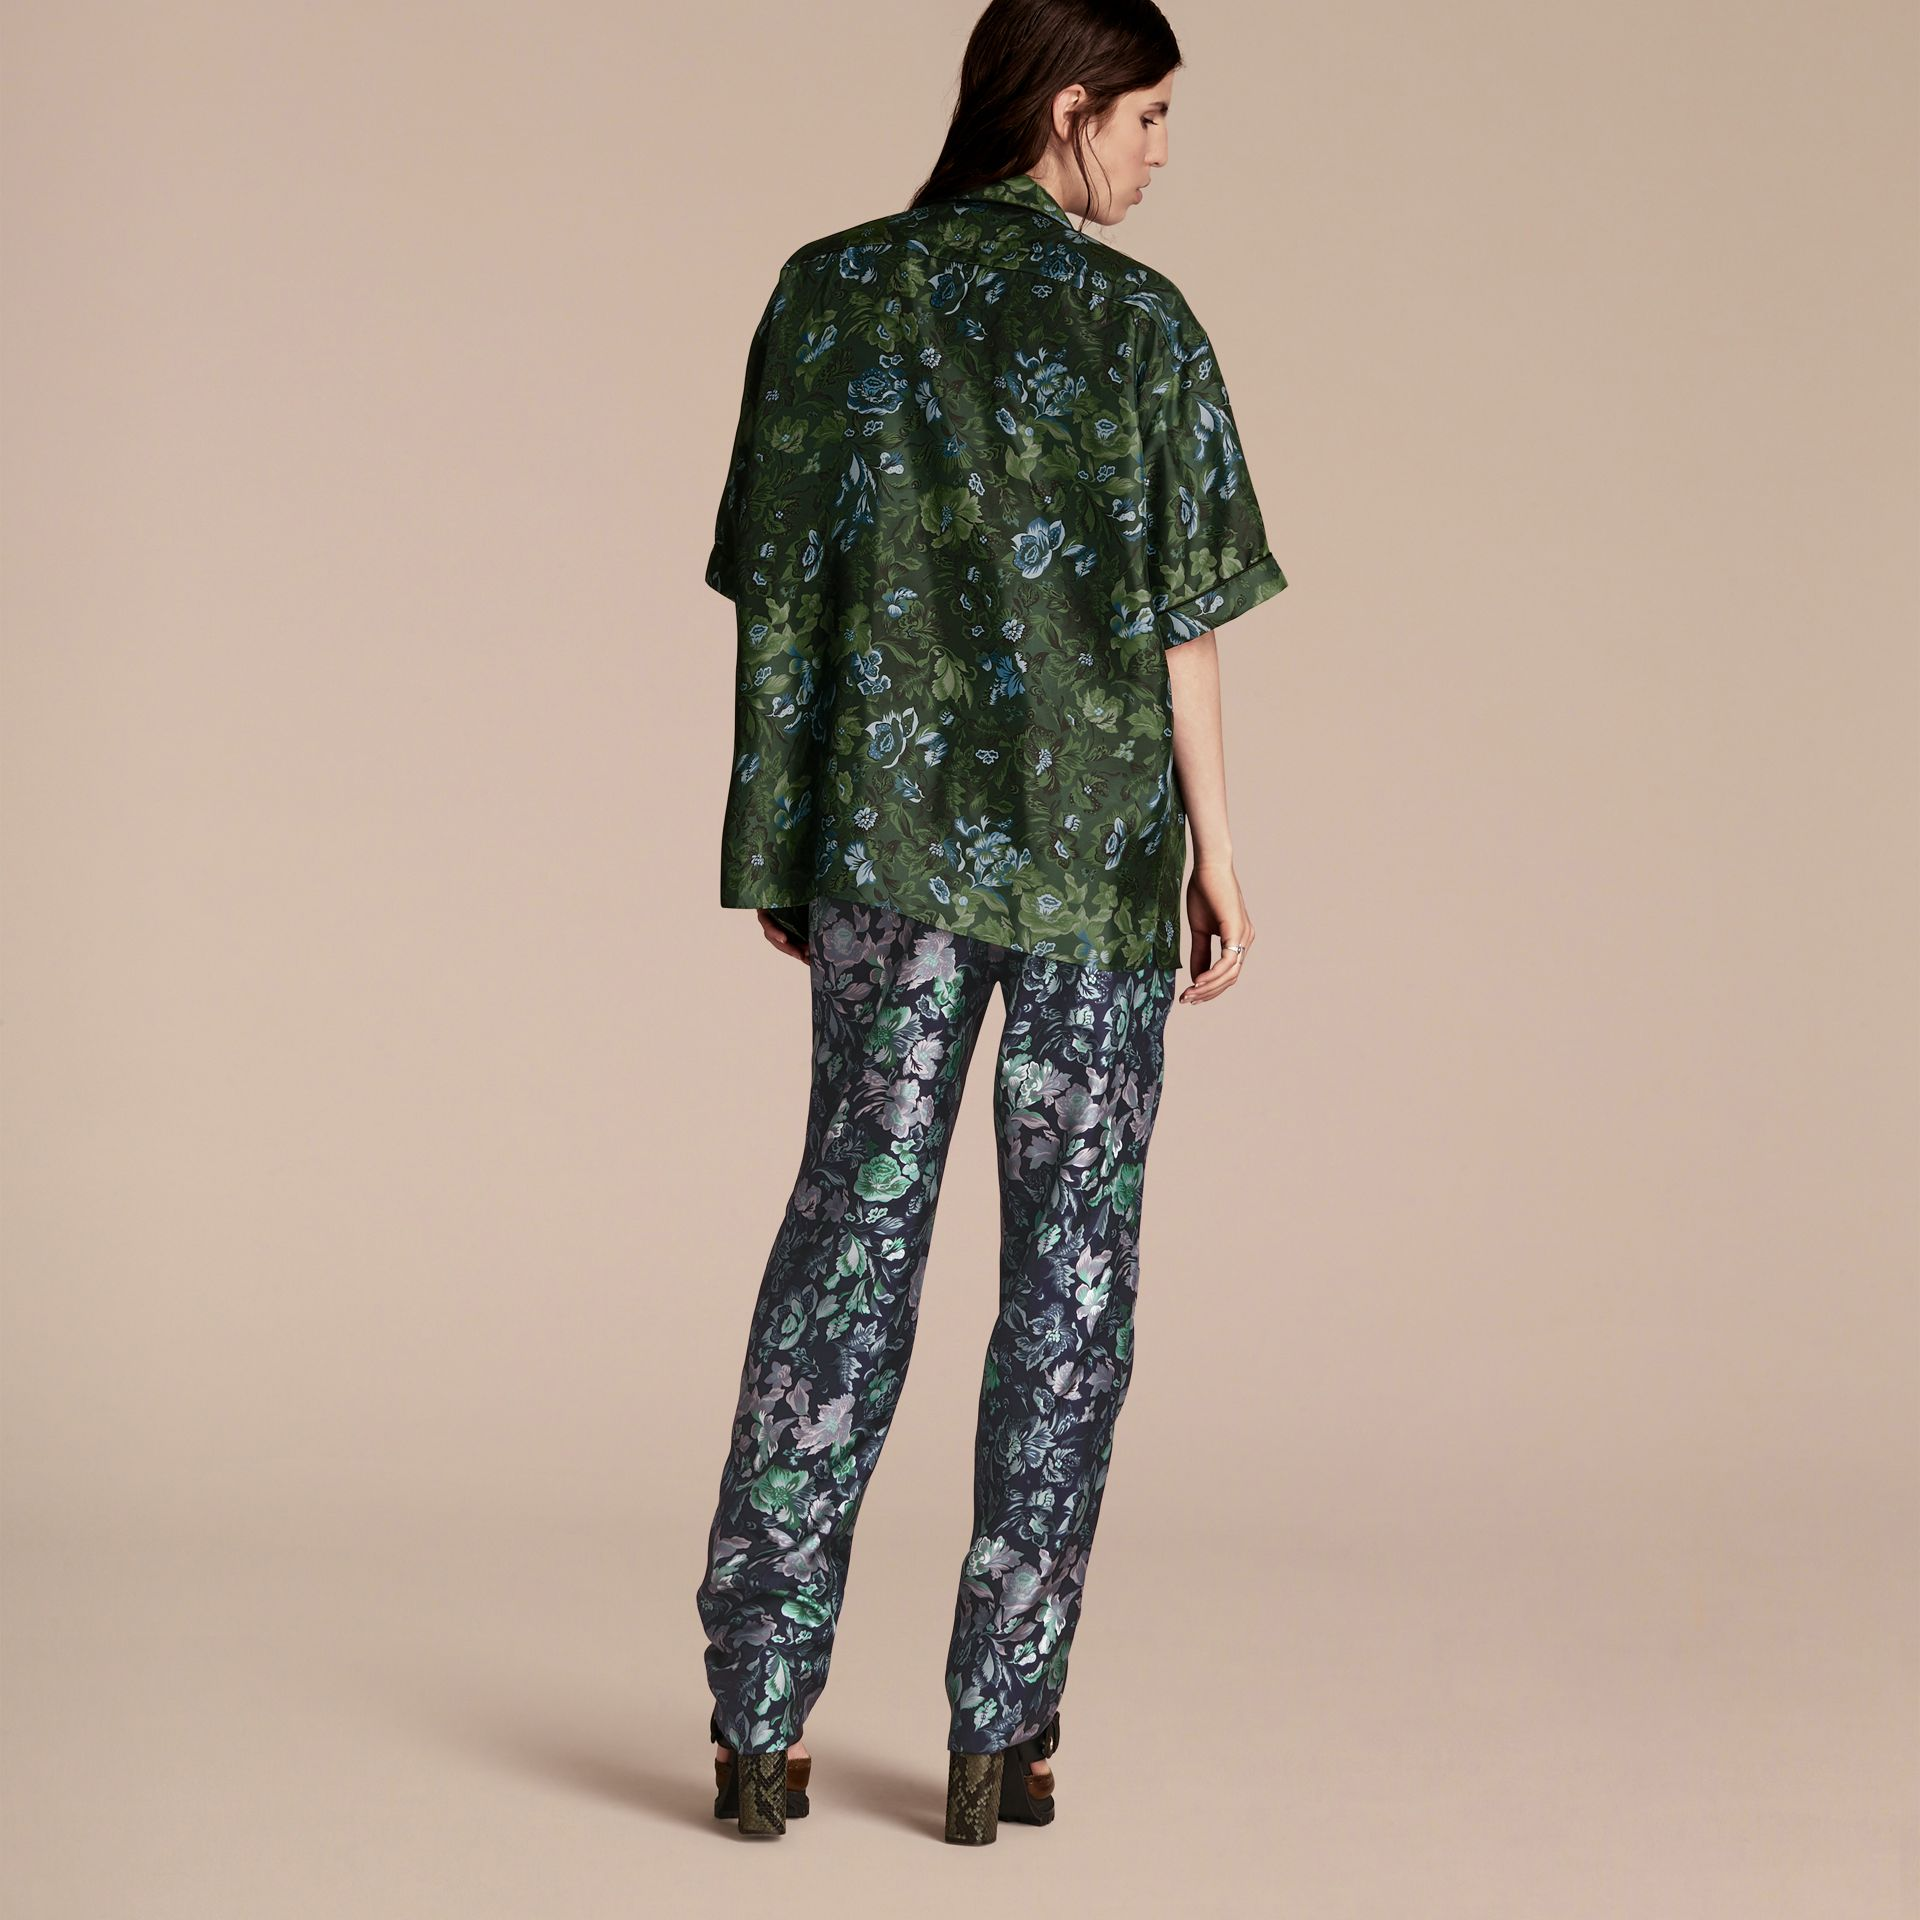 Forest green Short-sleeved Floral Print Silk Pyjama-style Shirt Forest Green - gallery image 3